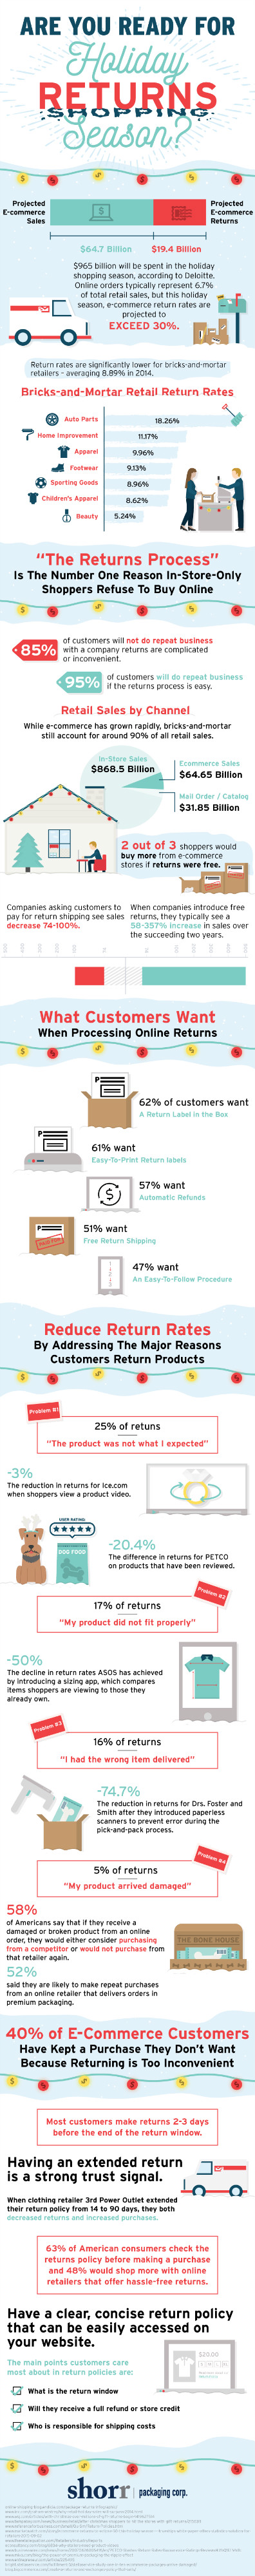 How the Returns Process Works for Online Retailers [Infographic]